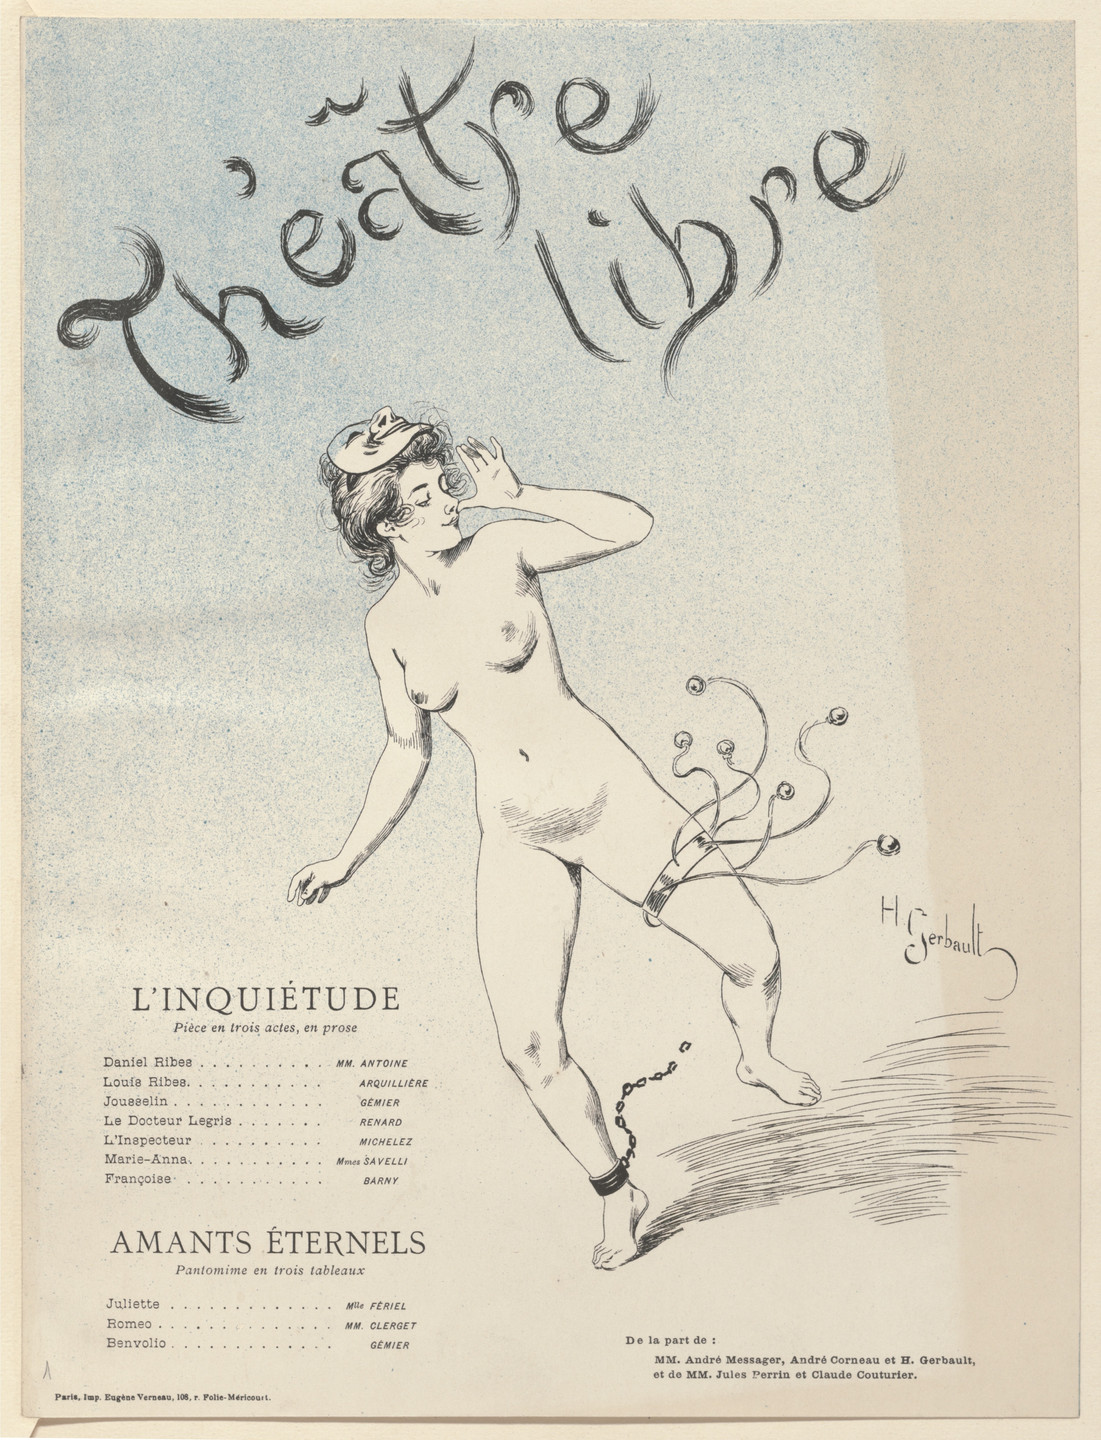 Henri Gerbault. Program for Anxiety (L'Inquiétude) and Eternal lovers (Amants éternels) from The Beraldi Album of Theatre Programs. 1893